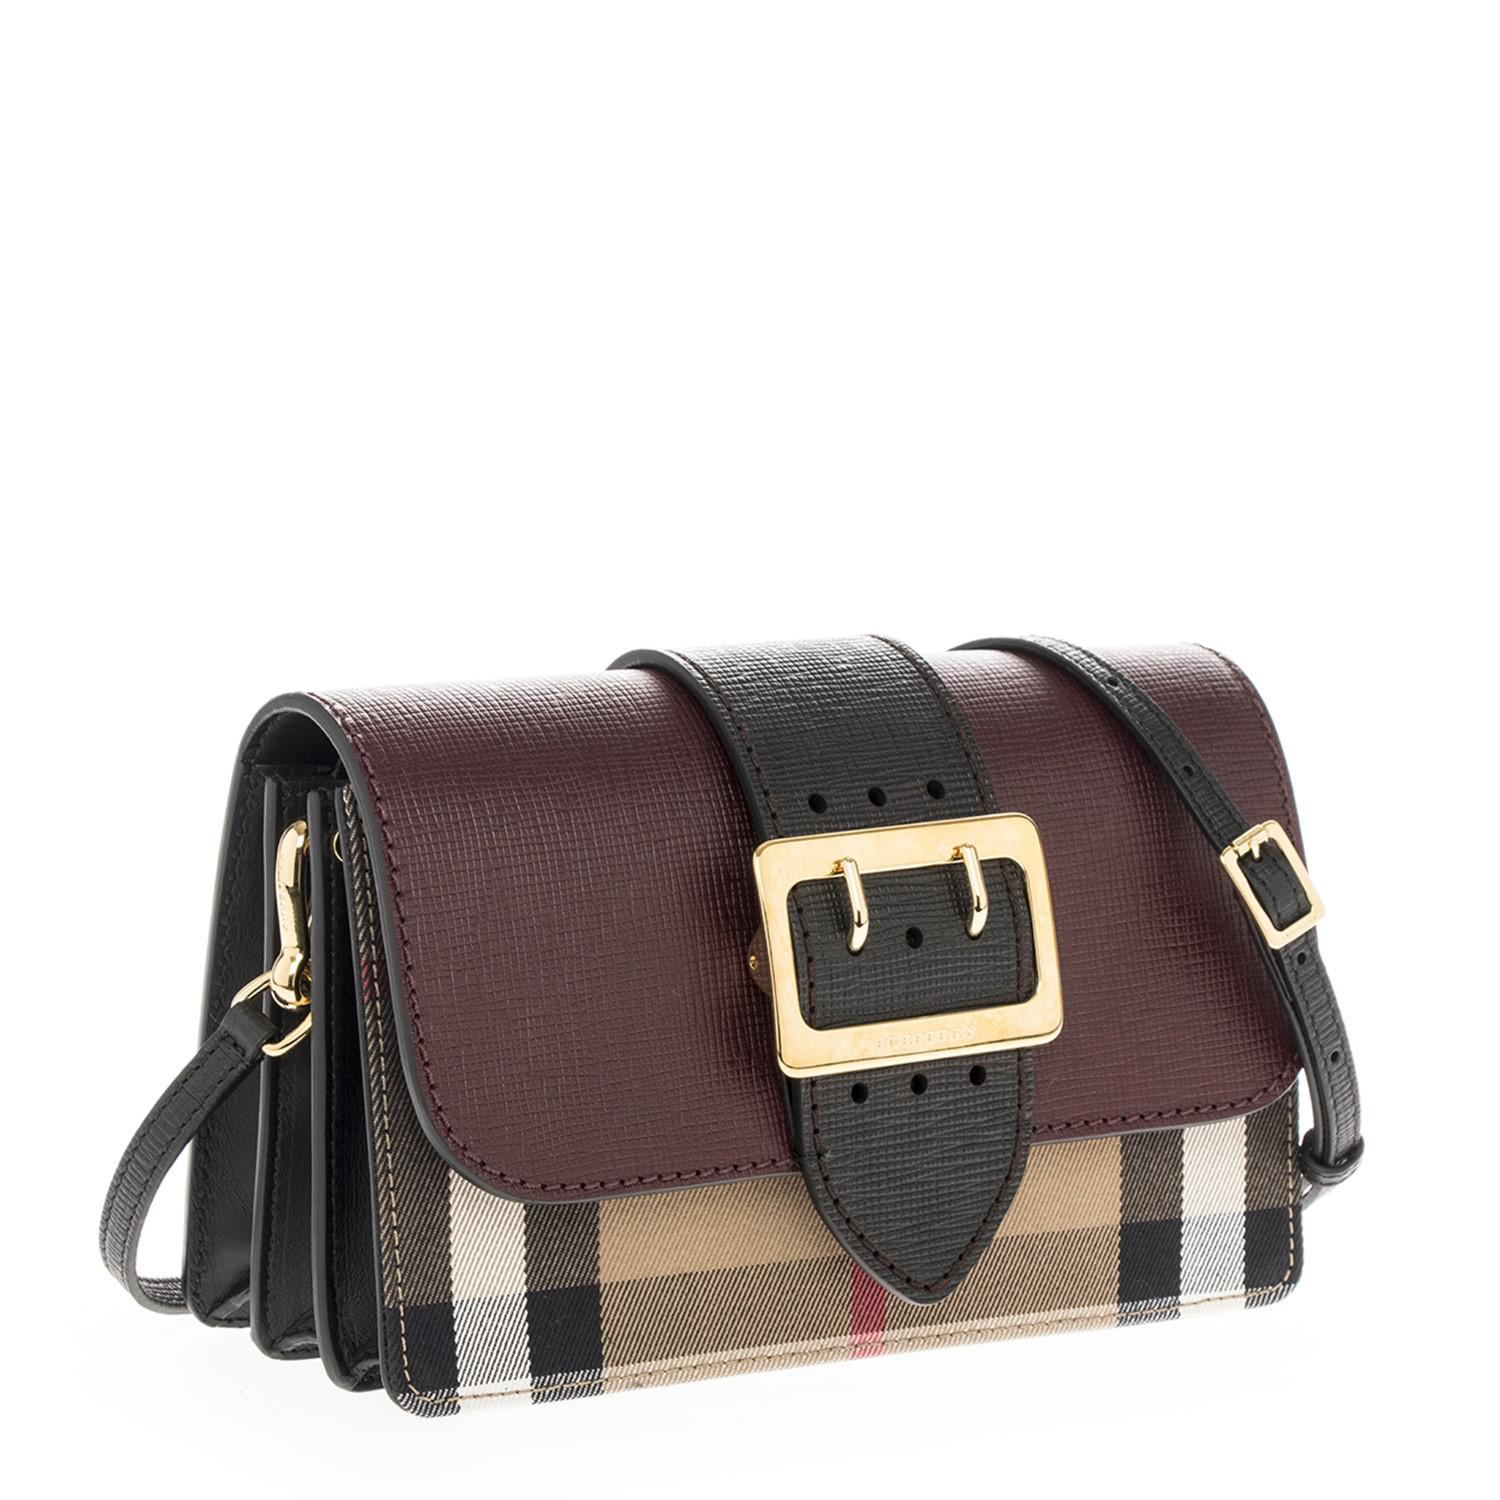 Lyst - Burberry Buckle Bag In House Check And Burgundy Black in Black 1932e75c06